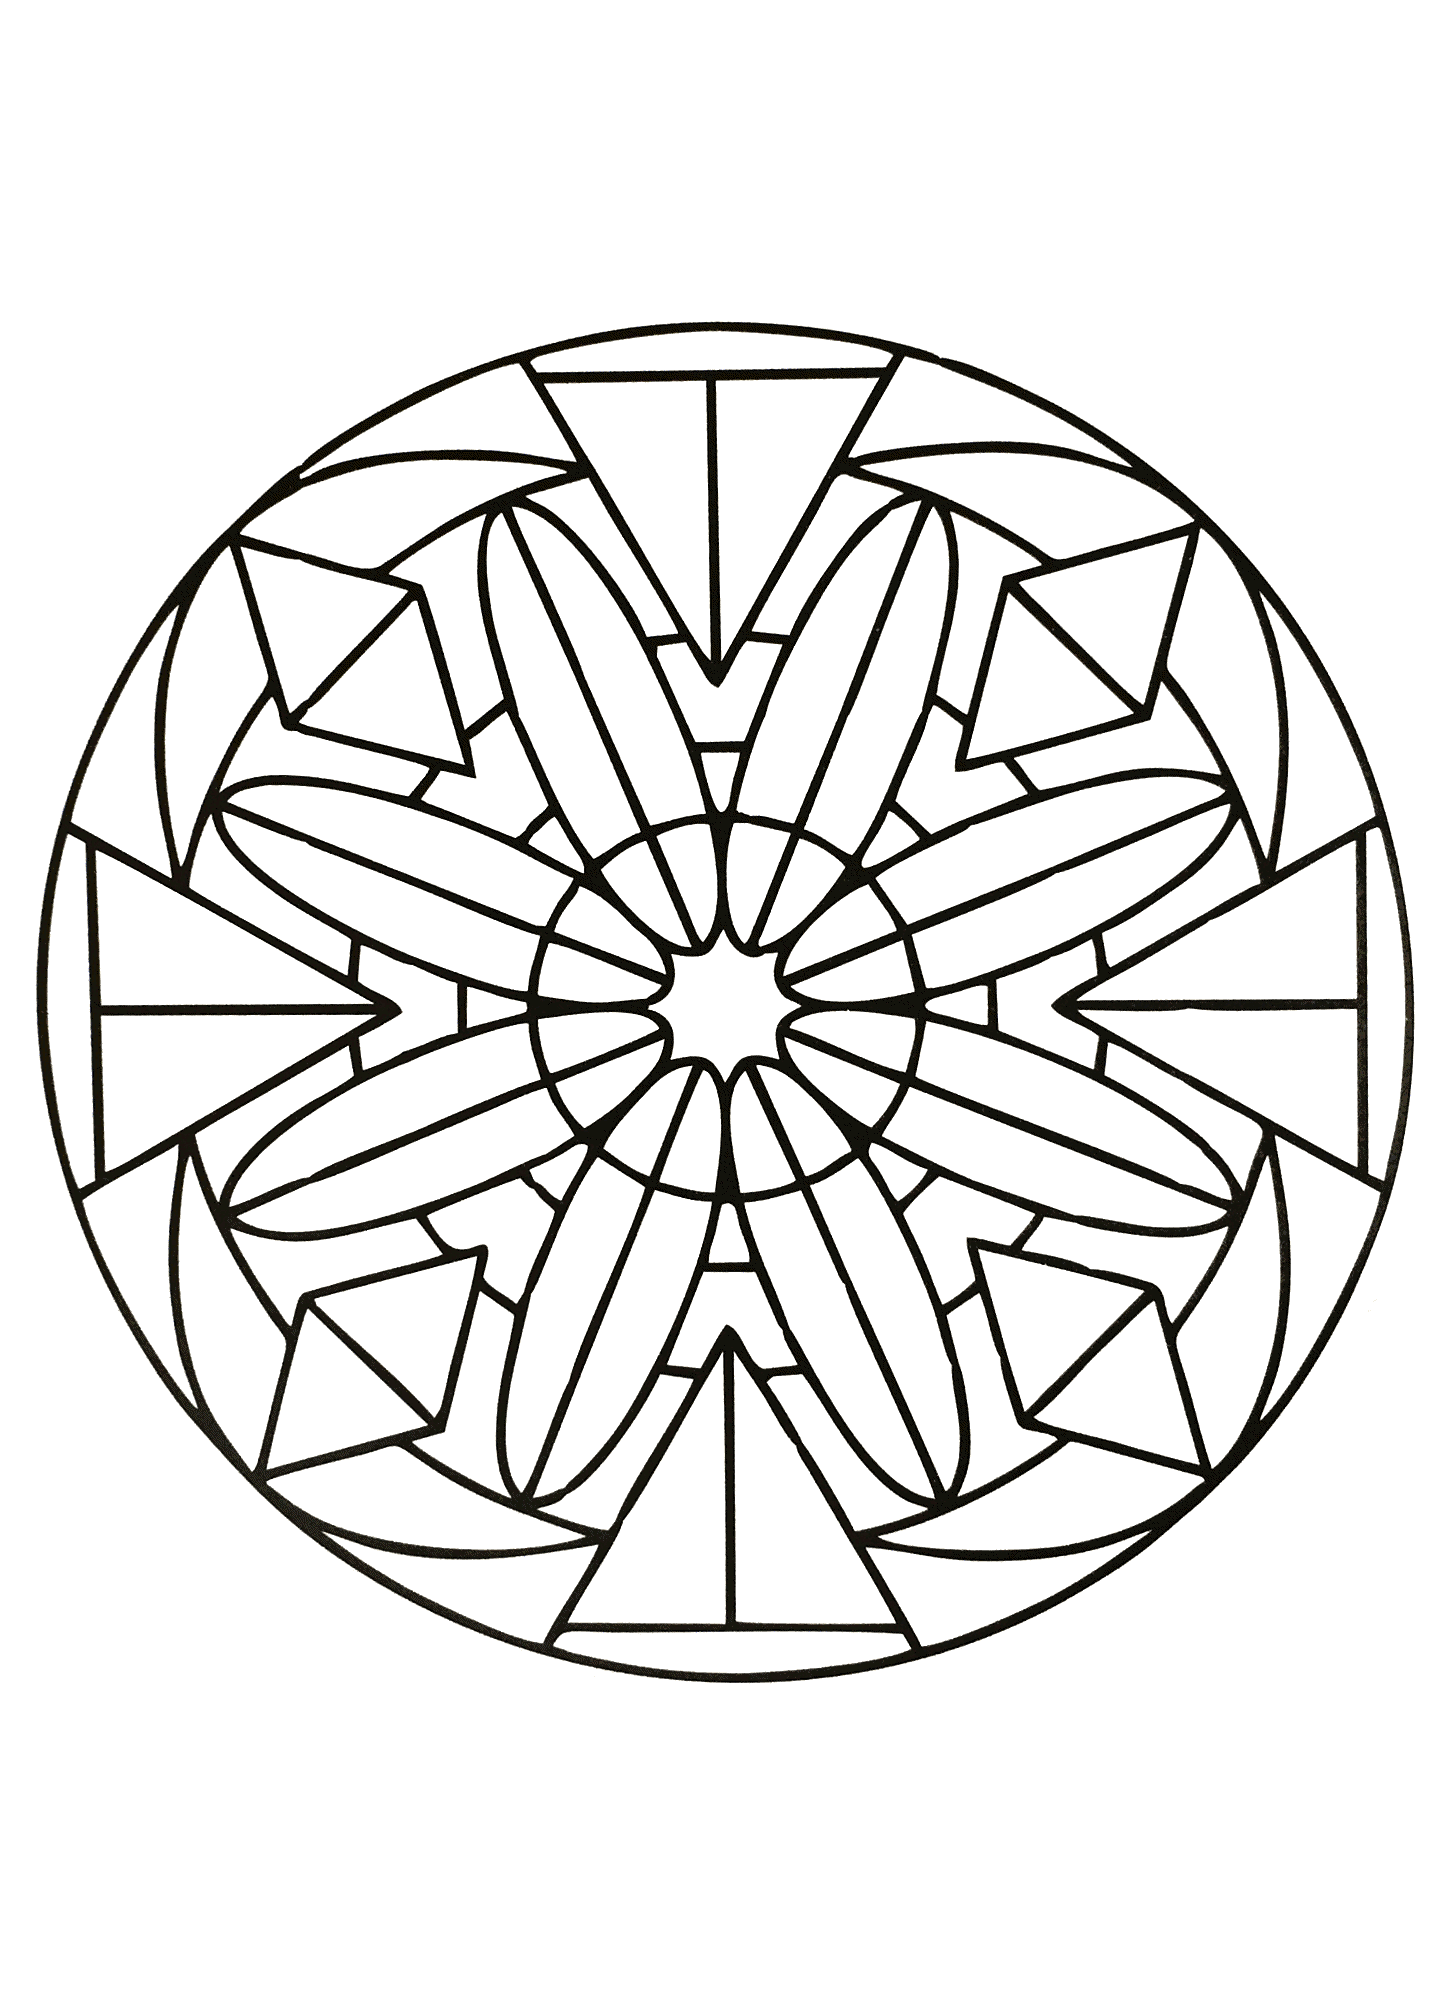 Free Coloring Page Mandalas To Download For 9